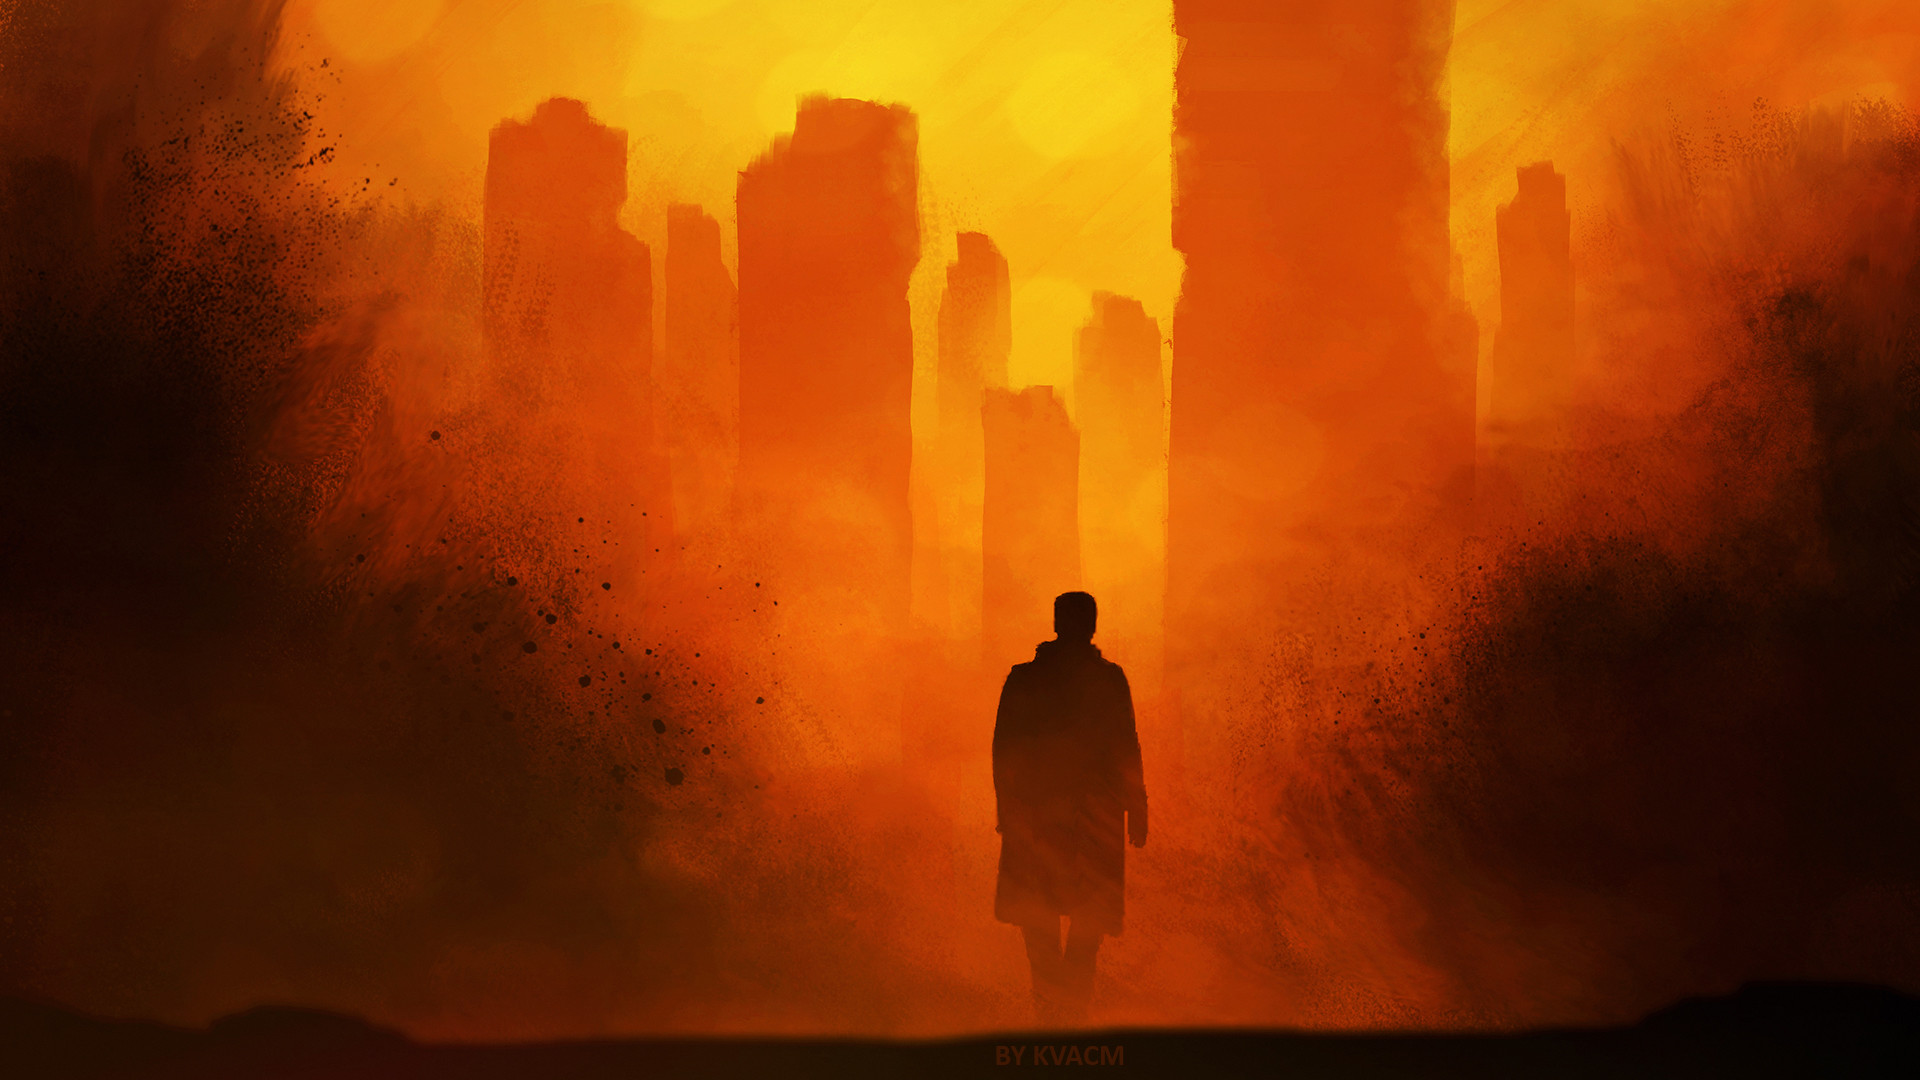 Blade Runner 2049 Art HD, HD Movies, 4k Wallpapers, Images